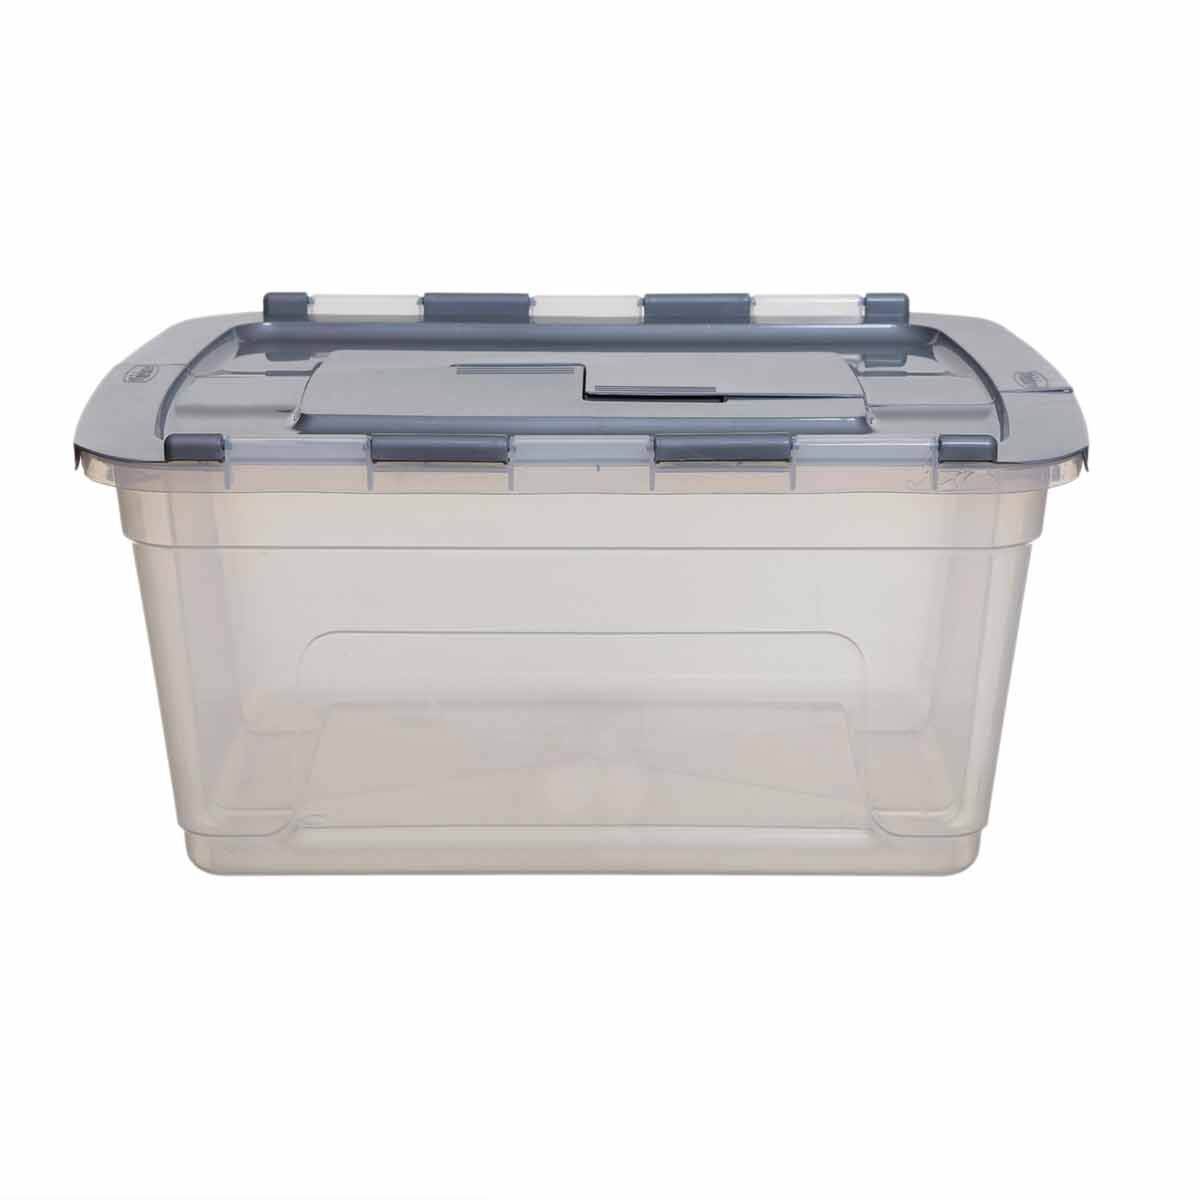 Whitefurze Tote Box 45 Litre Pack of 5